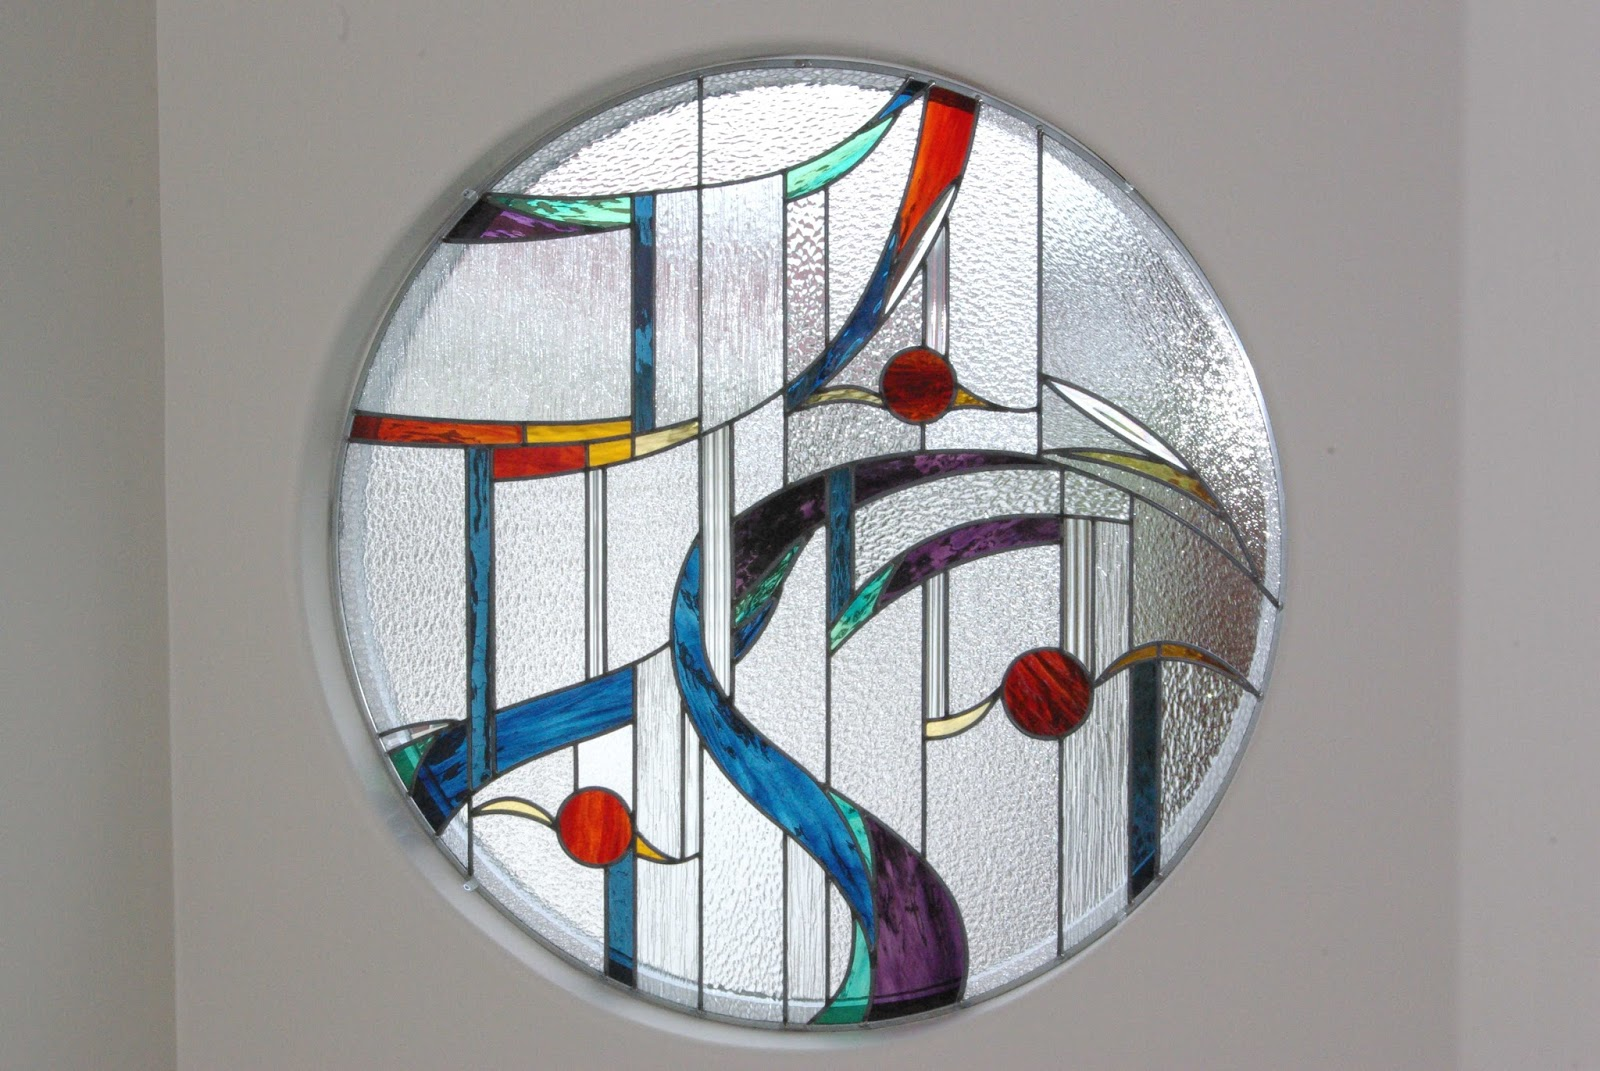 e of a Kind Stained Glass Windows and Oil Paintings